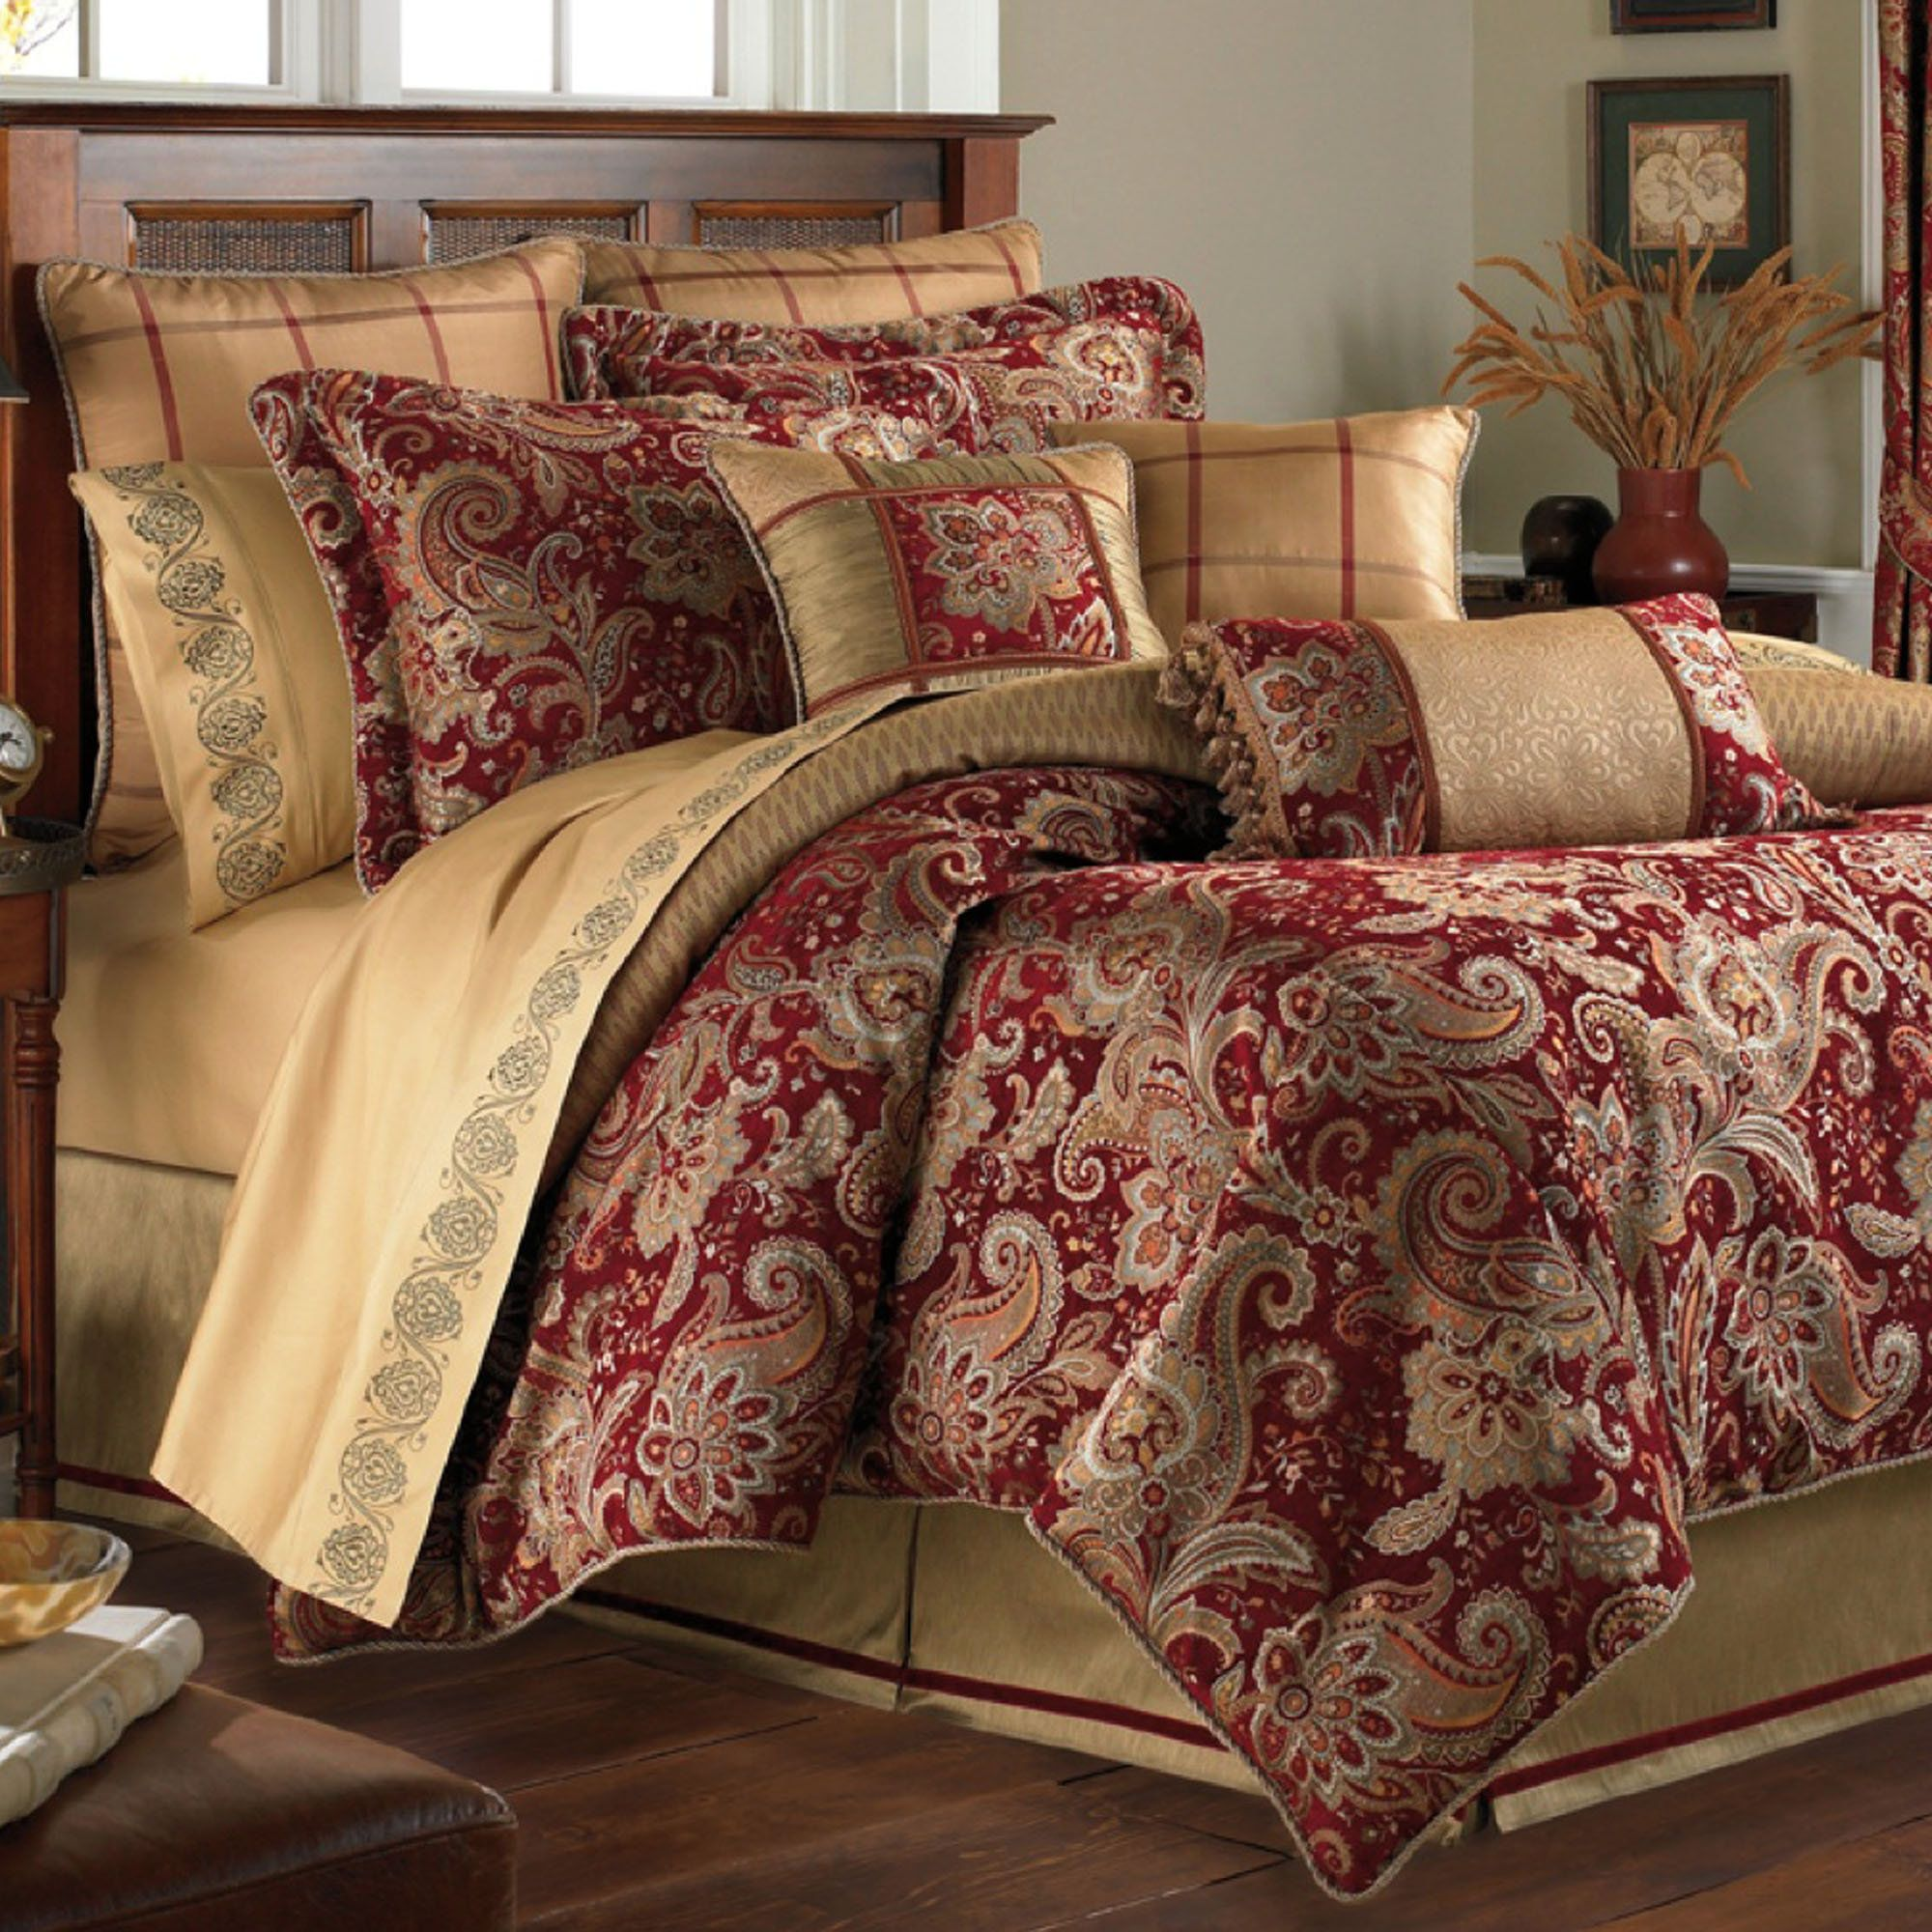 Paisley Mystique forter Bedding Sets by Croscill Touch of class